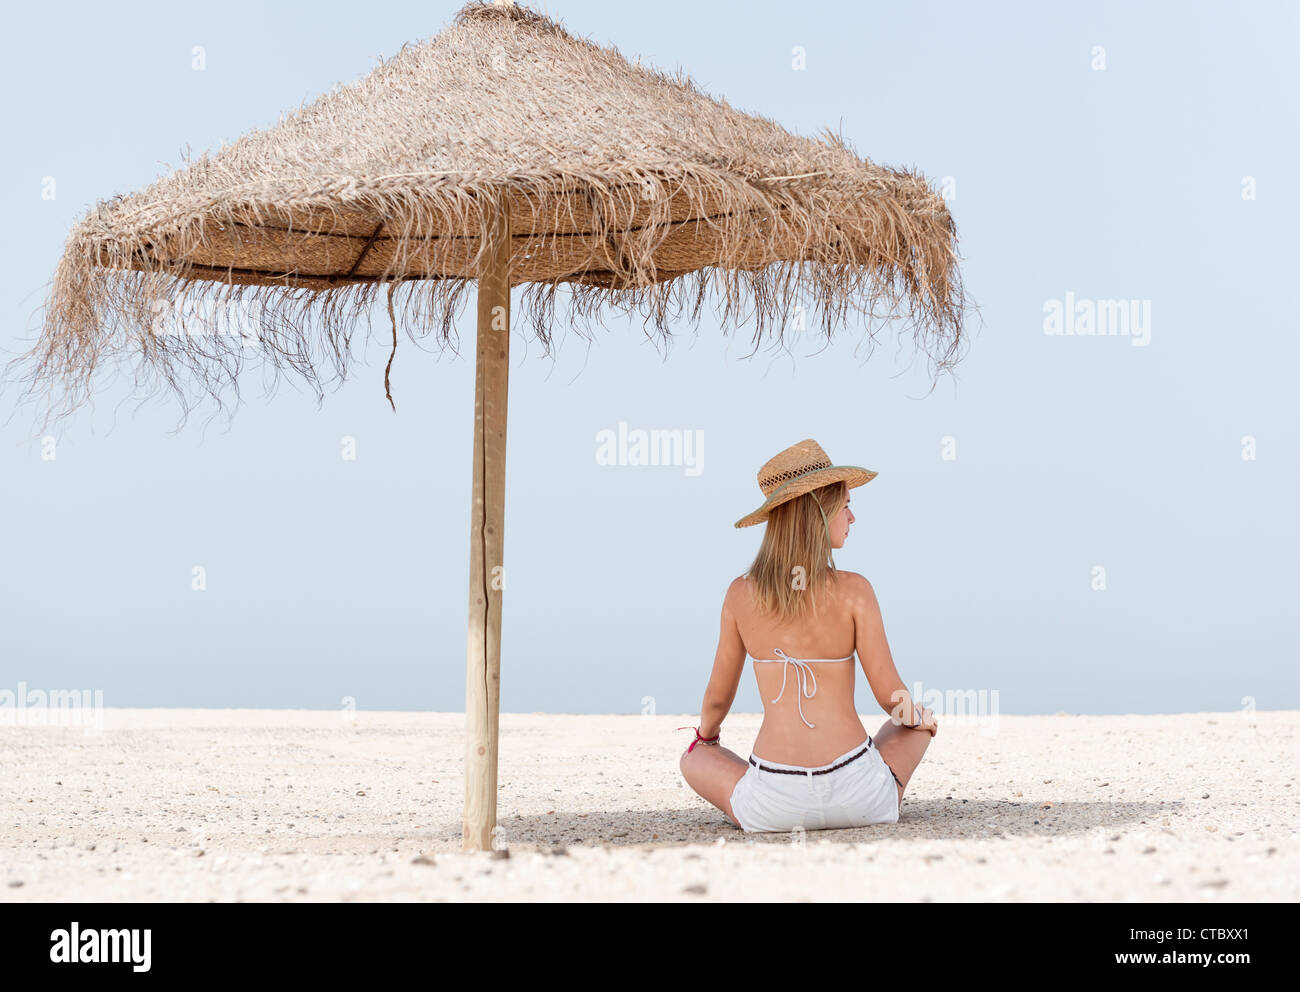 Protection from the Sun. - Stock Image